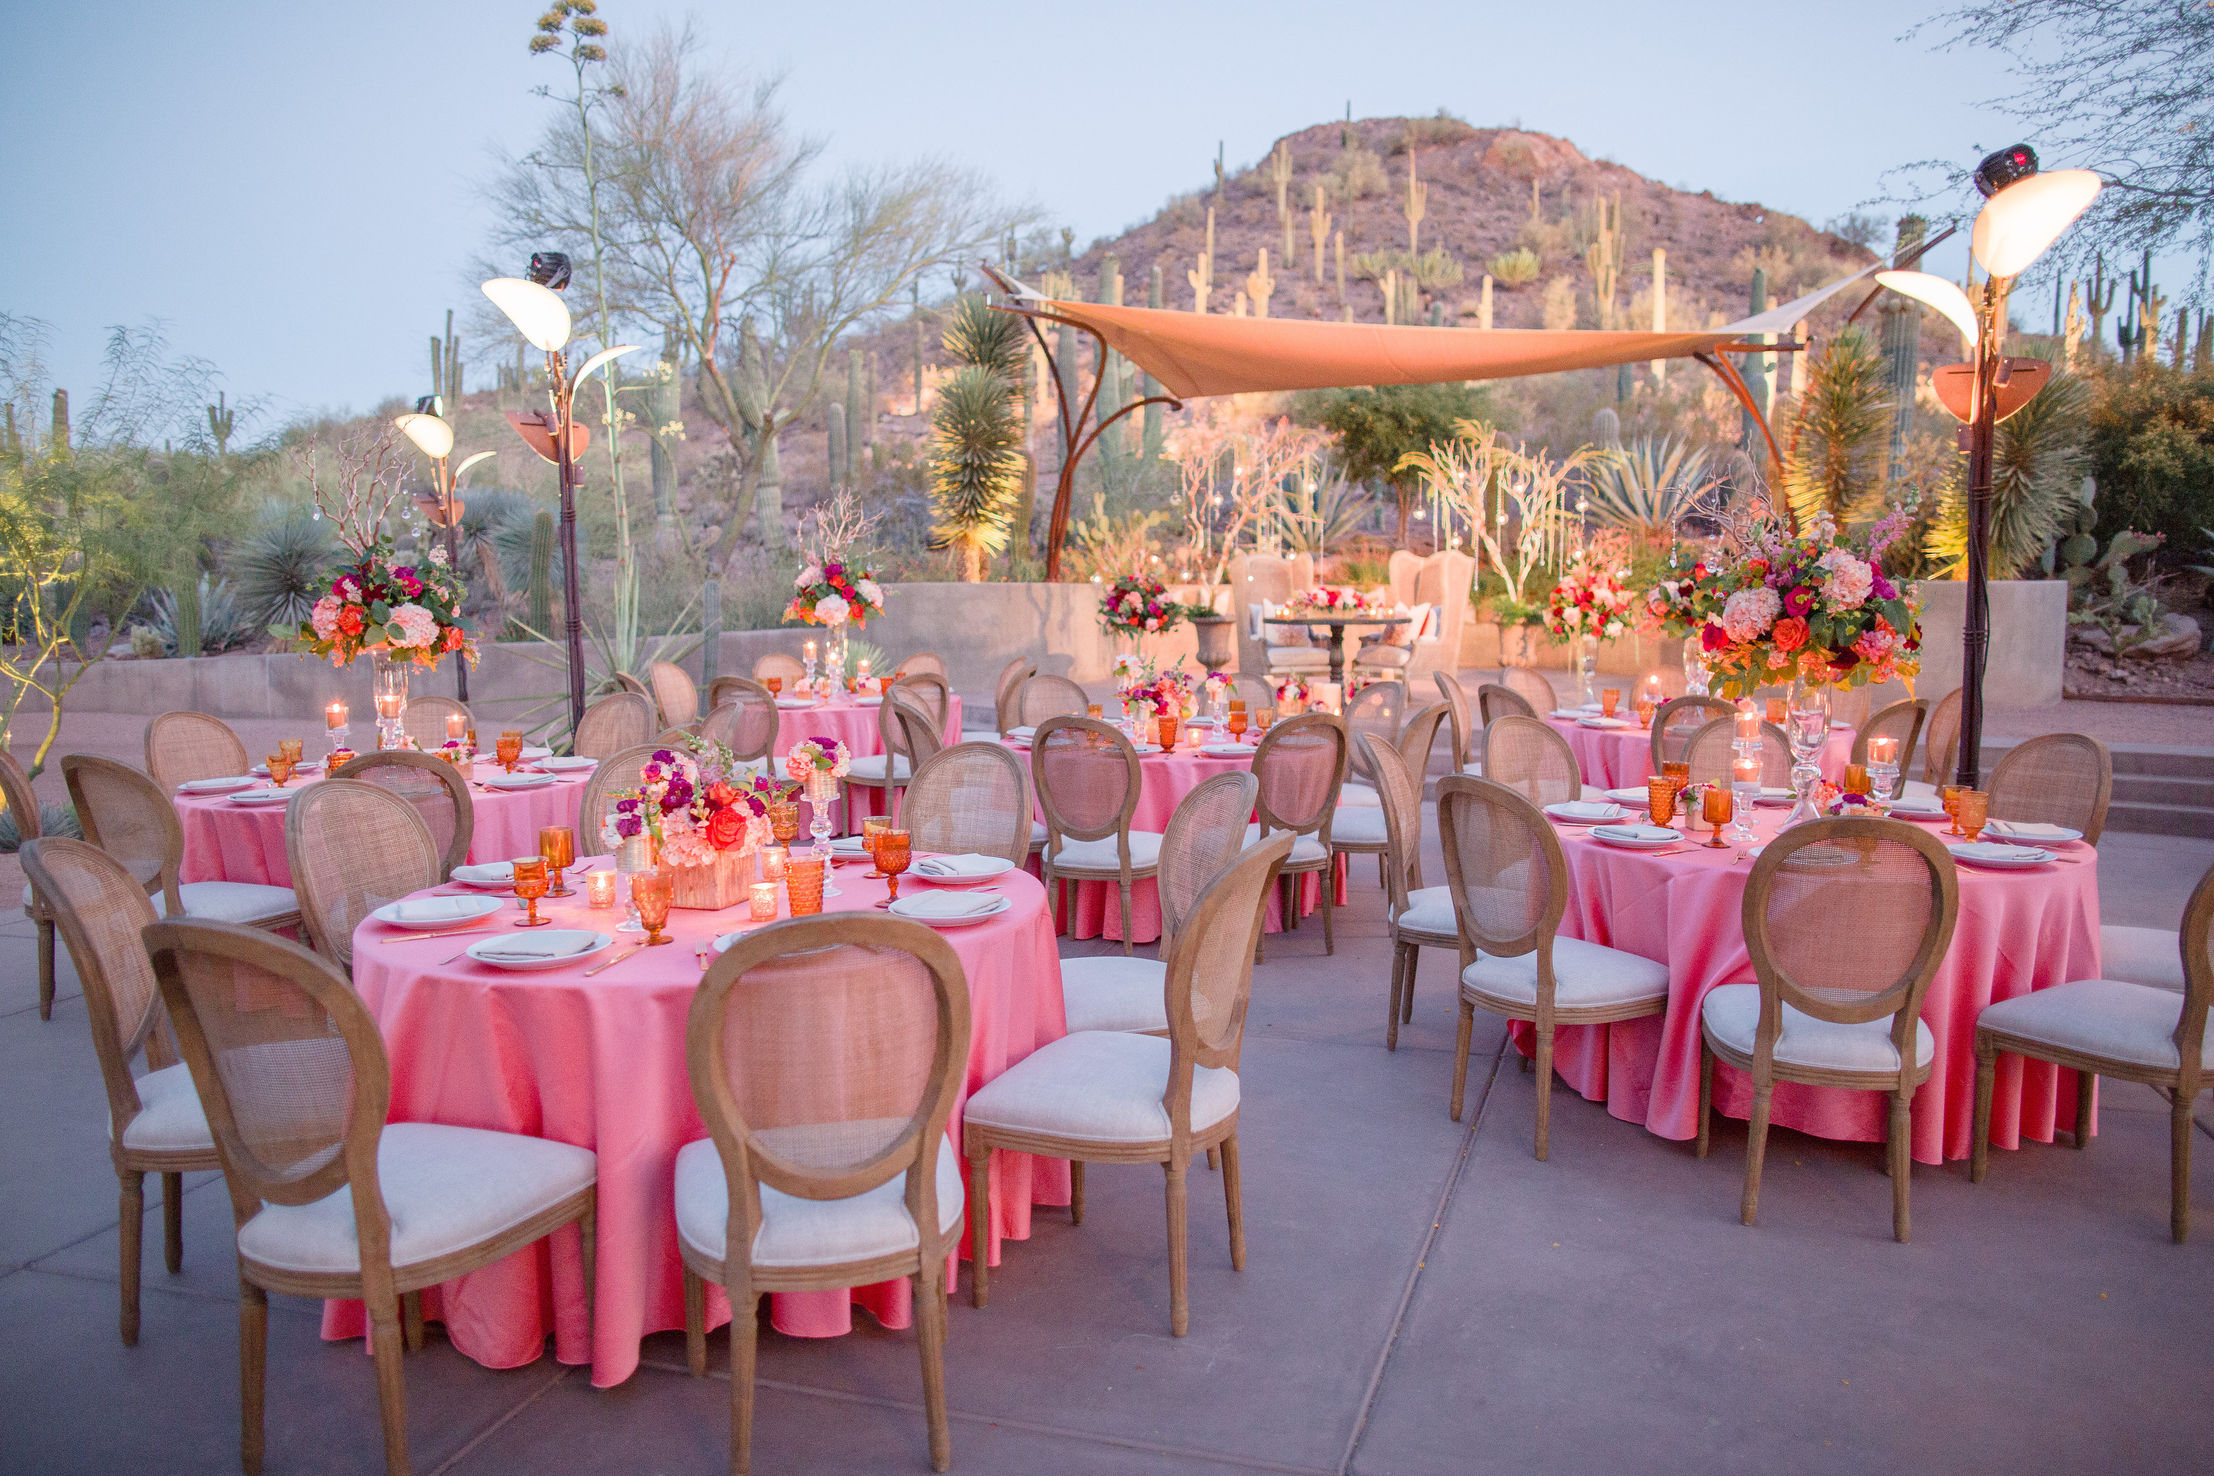 10 Offbeat Wedding Venues For The Quirky Bride Wheretraveler